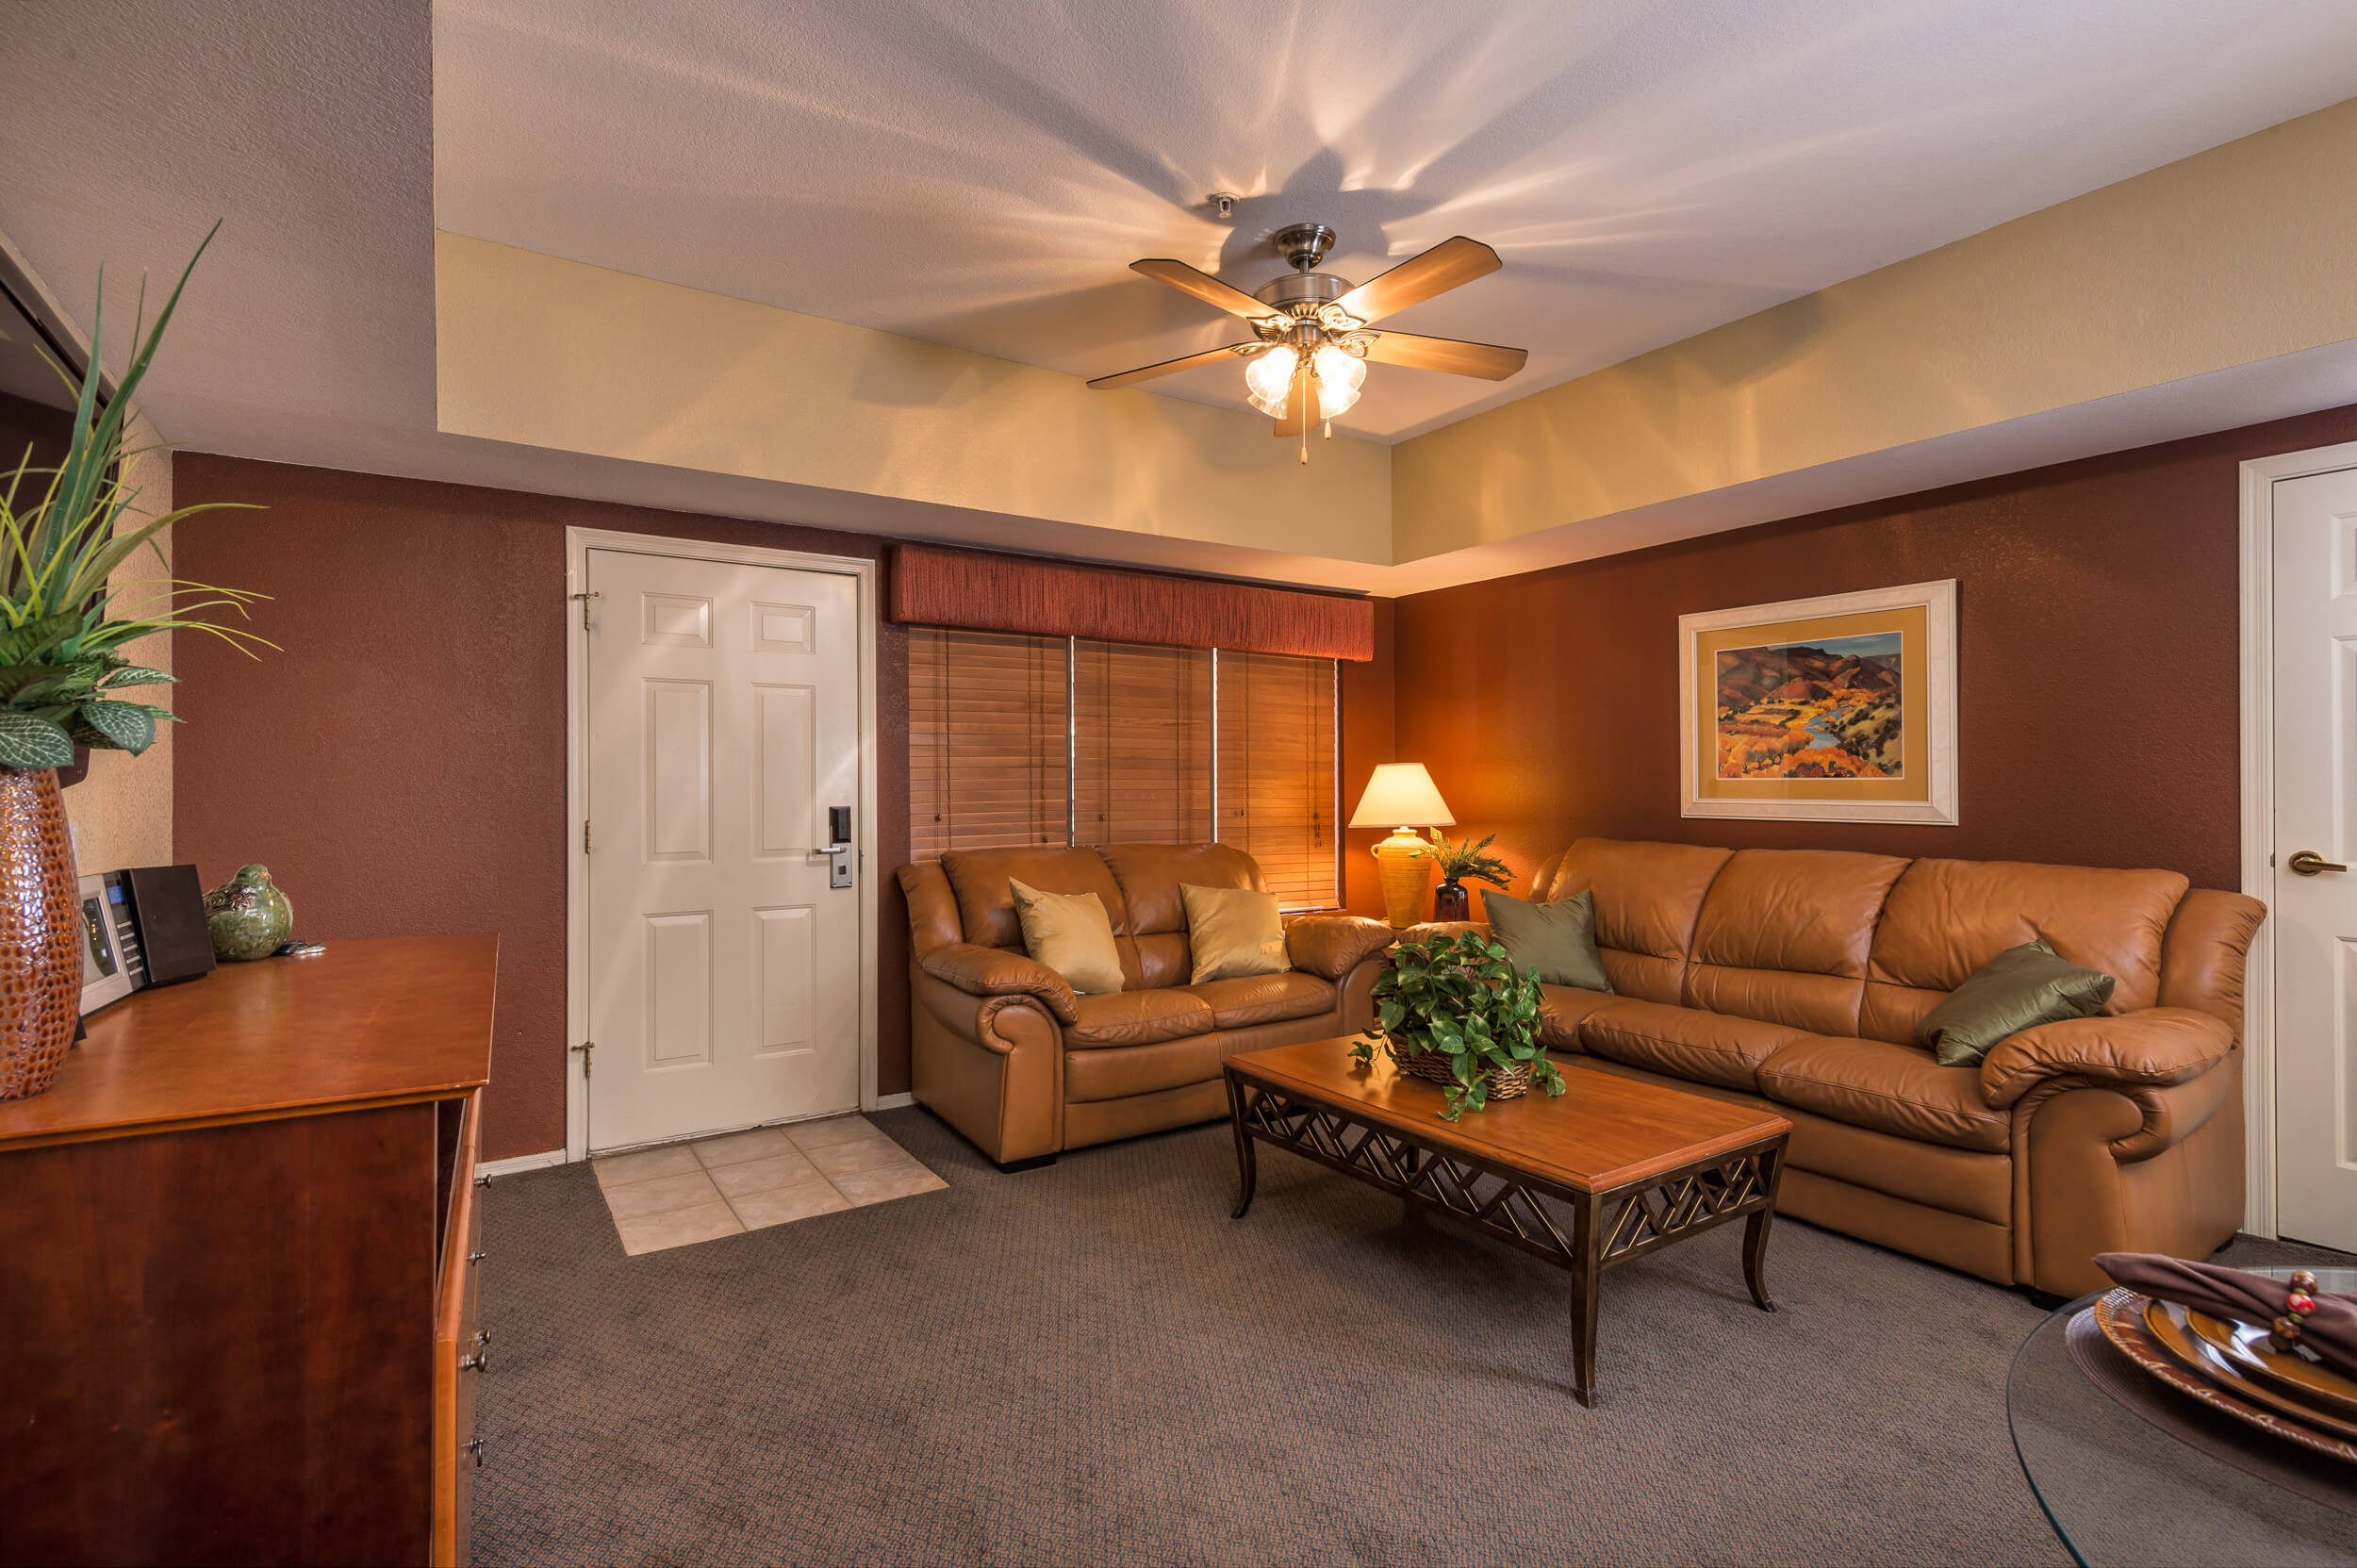 Entrance to spacious villa with leather couches and ceiling fan | Westgate Painted Mountain Golf Resort